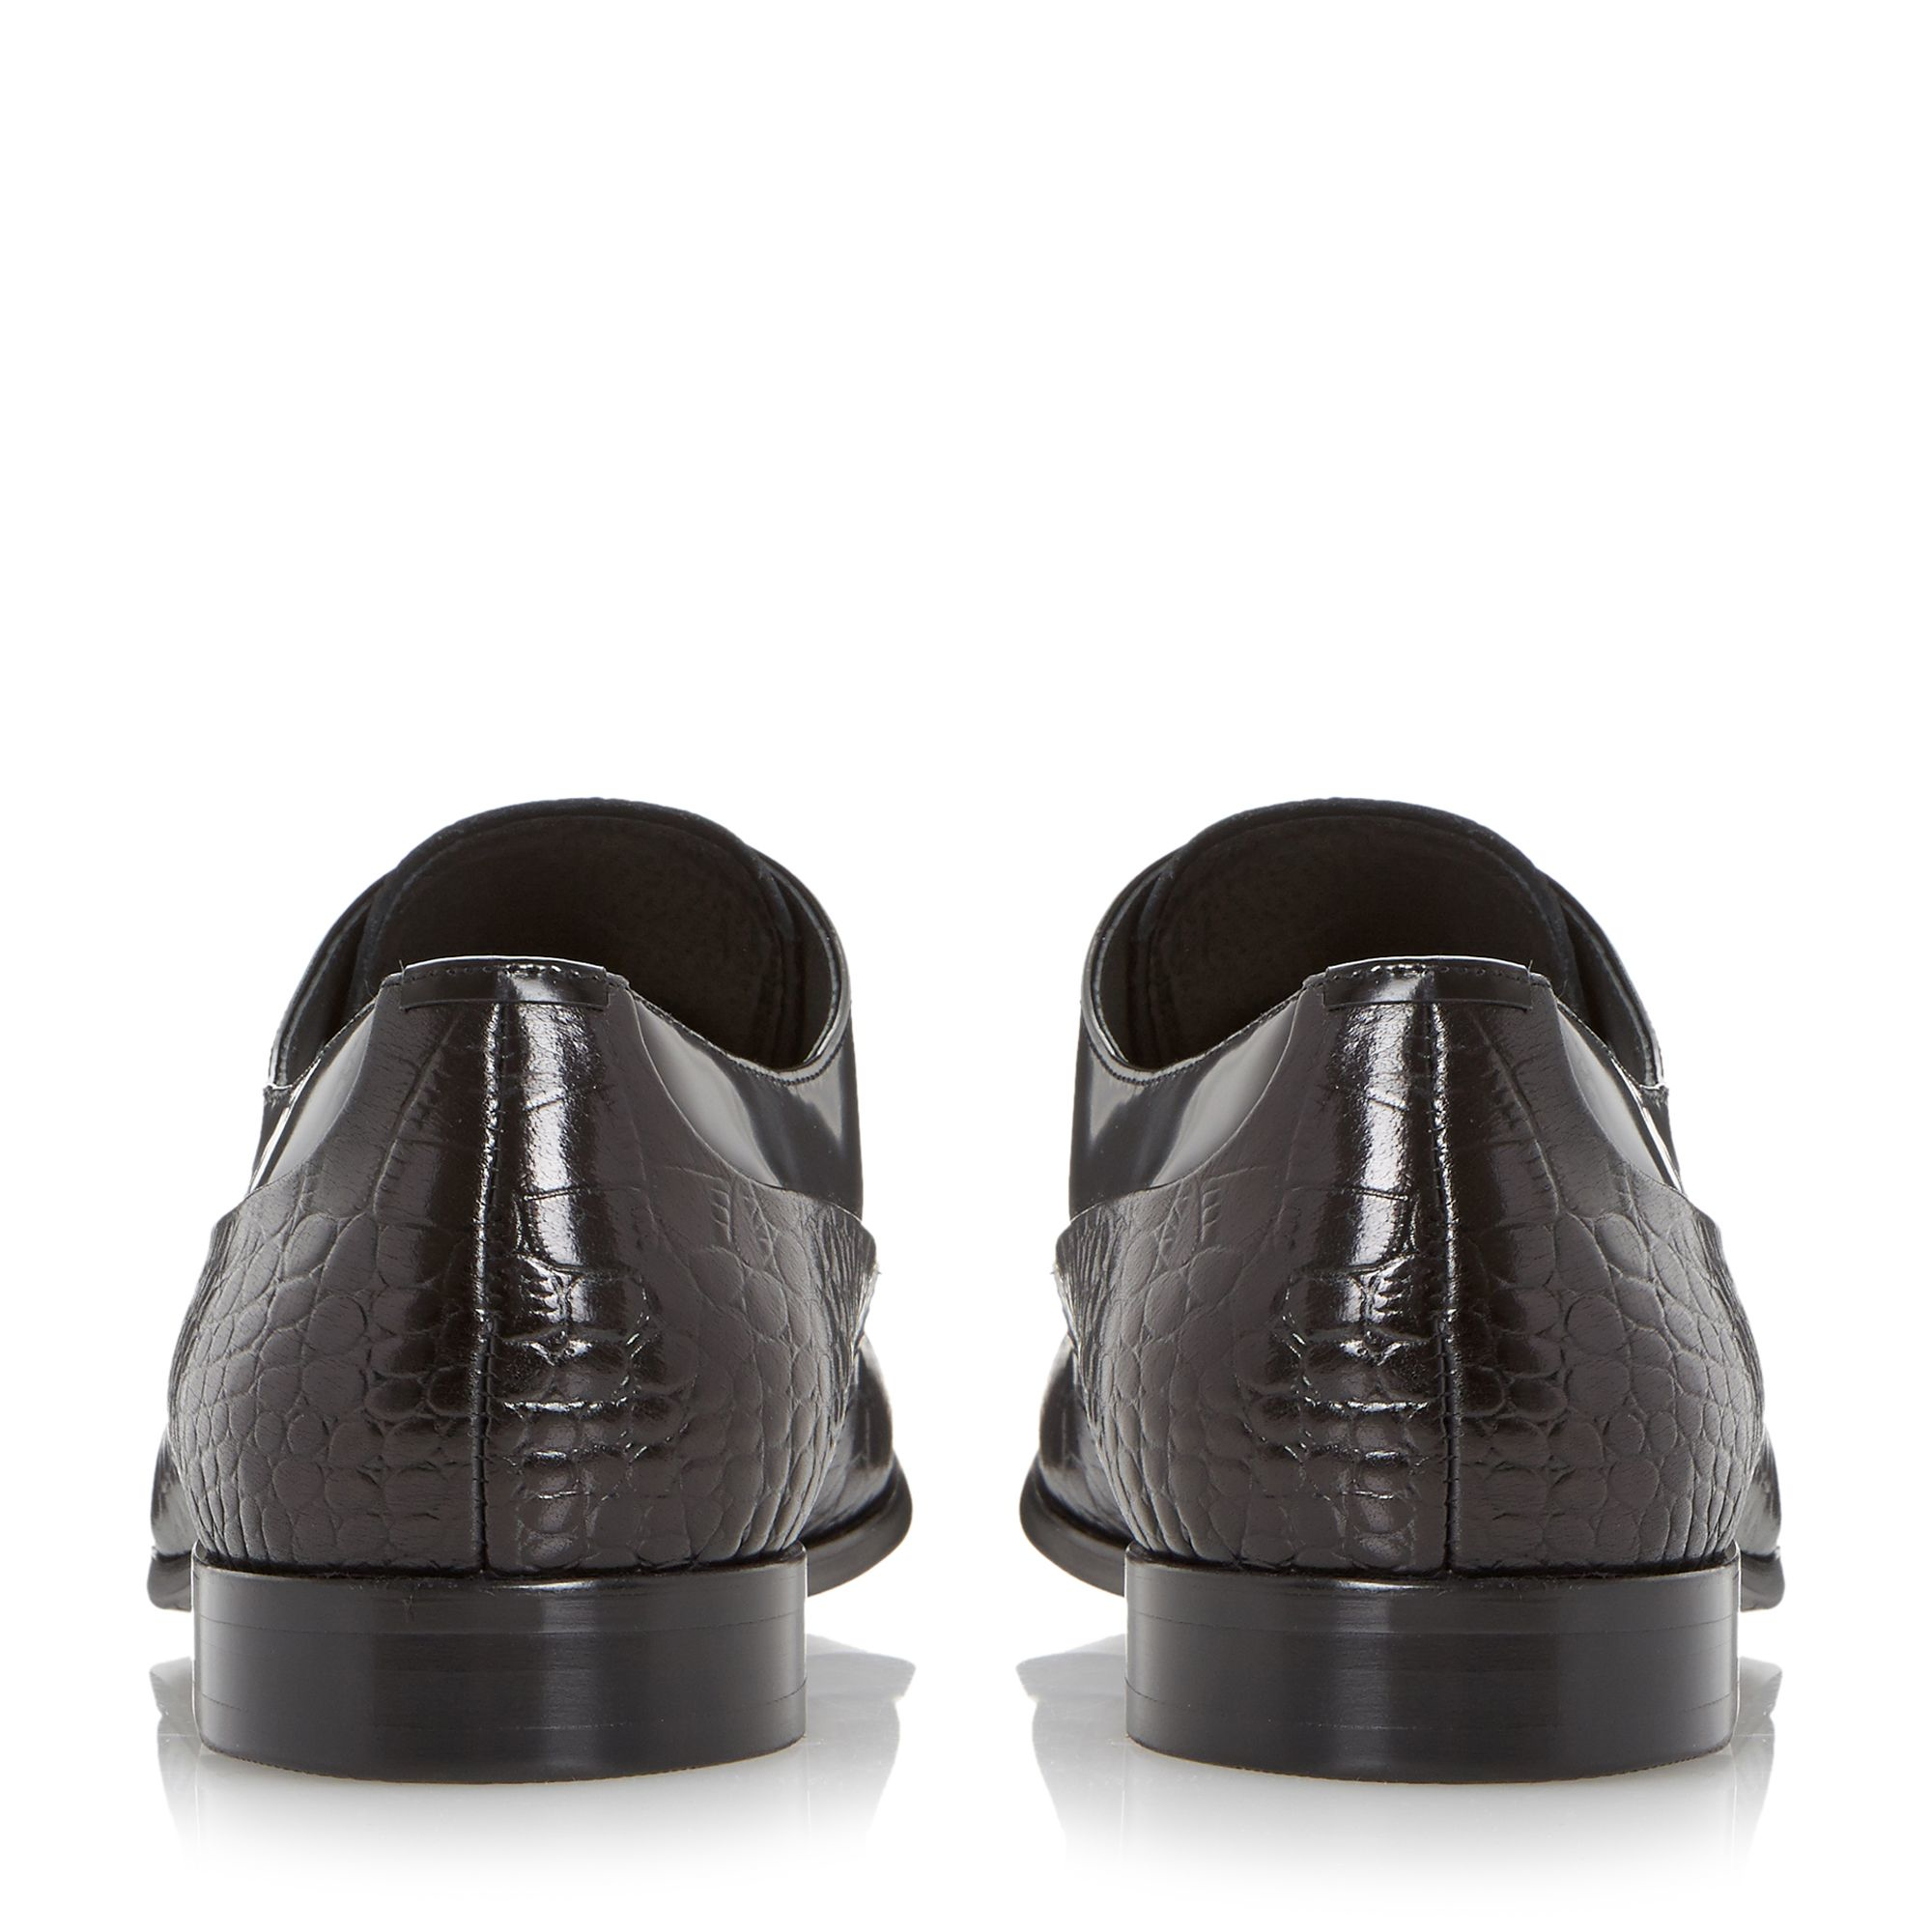 How To Clean Leather Cole Haan Shoes